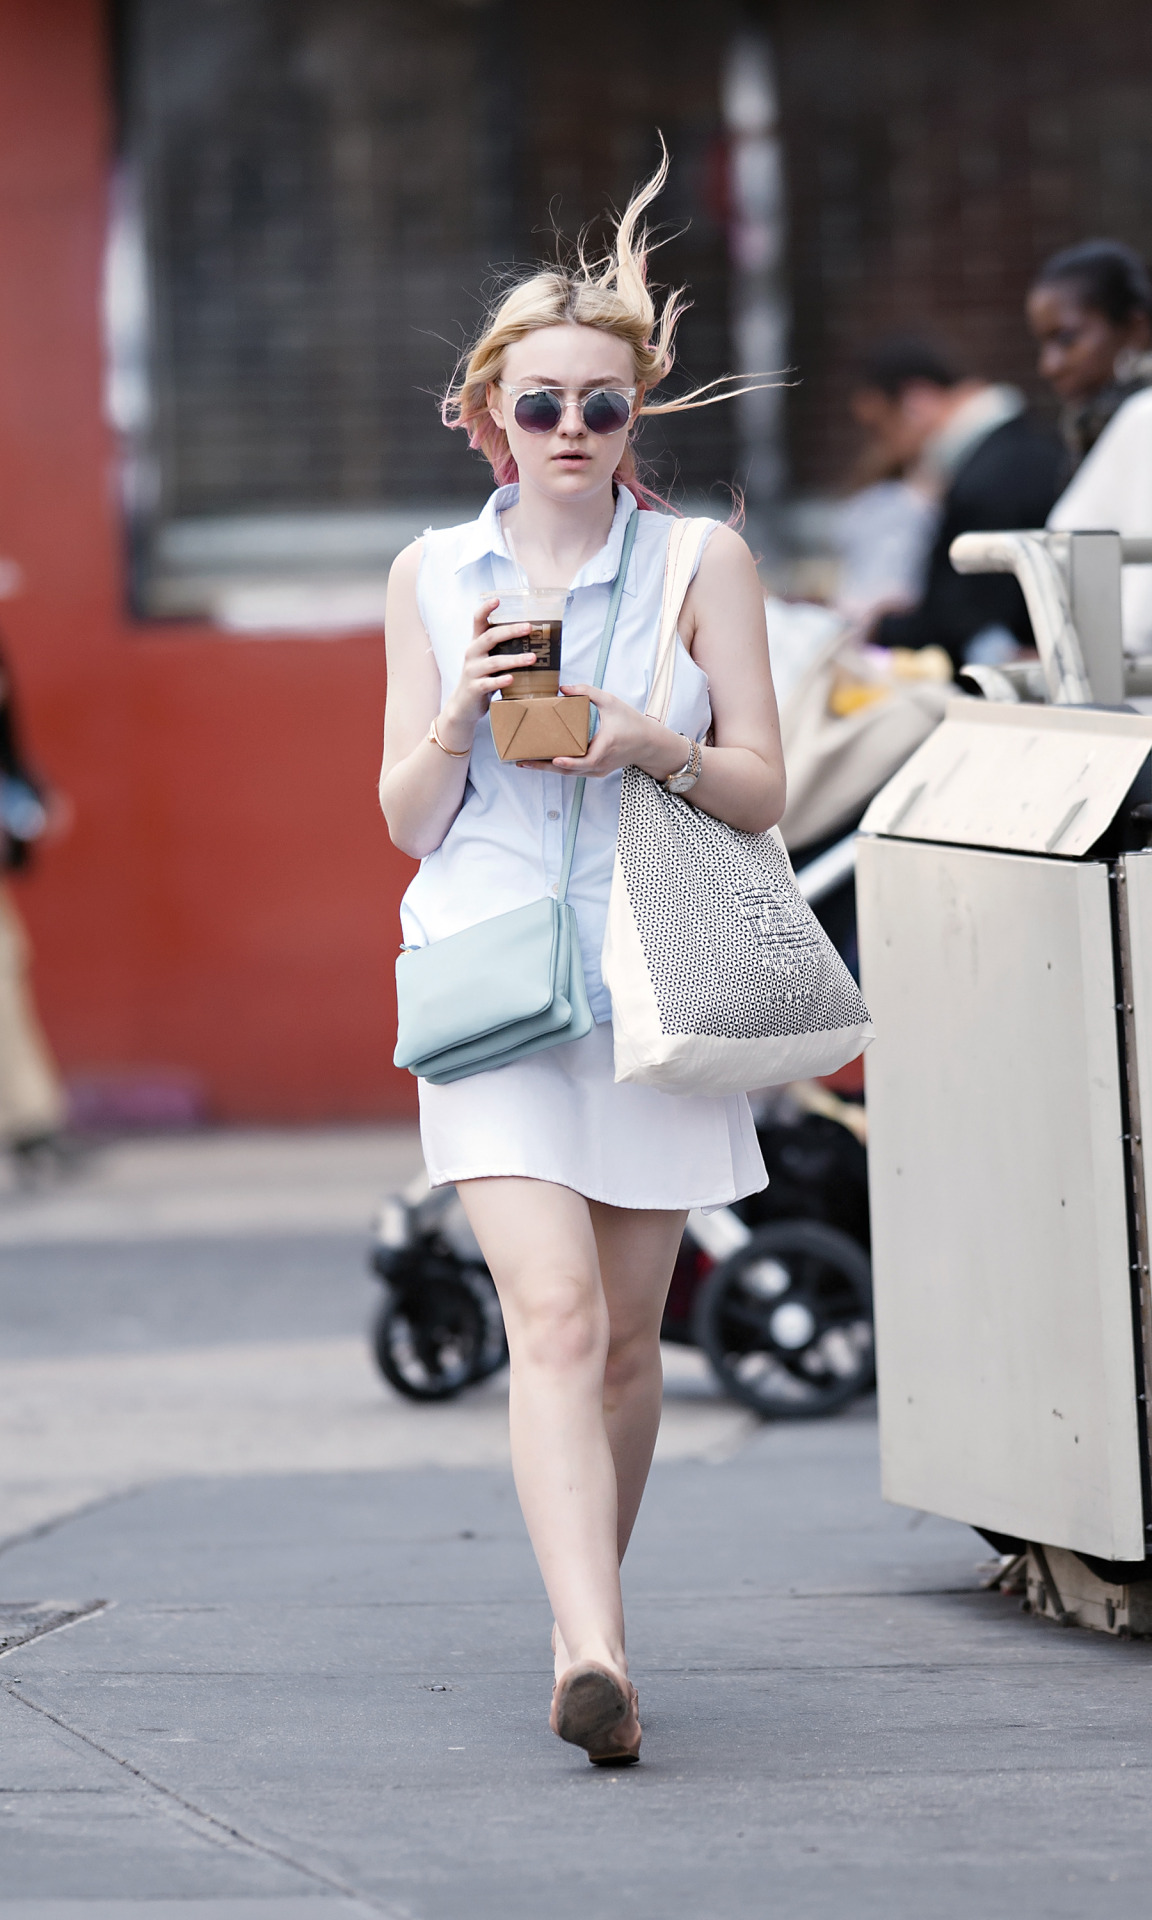 Dakota Fanning in NYC, April 9th